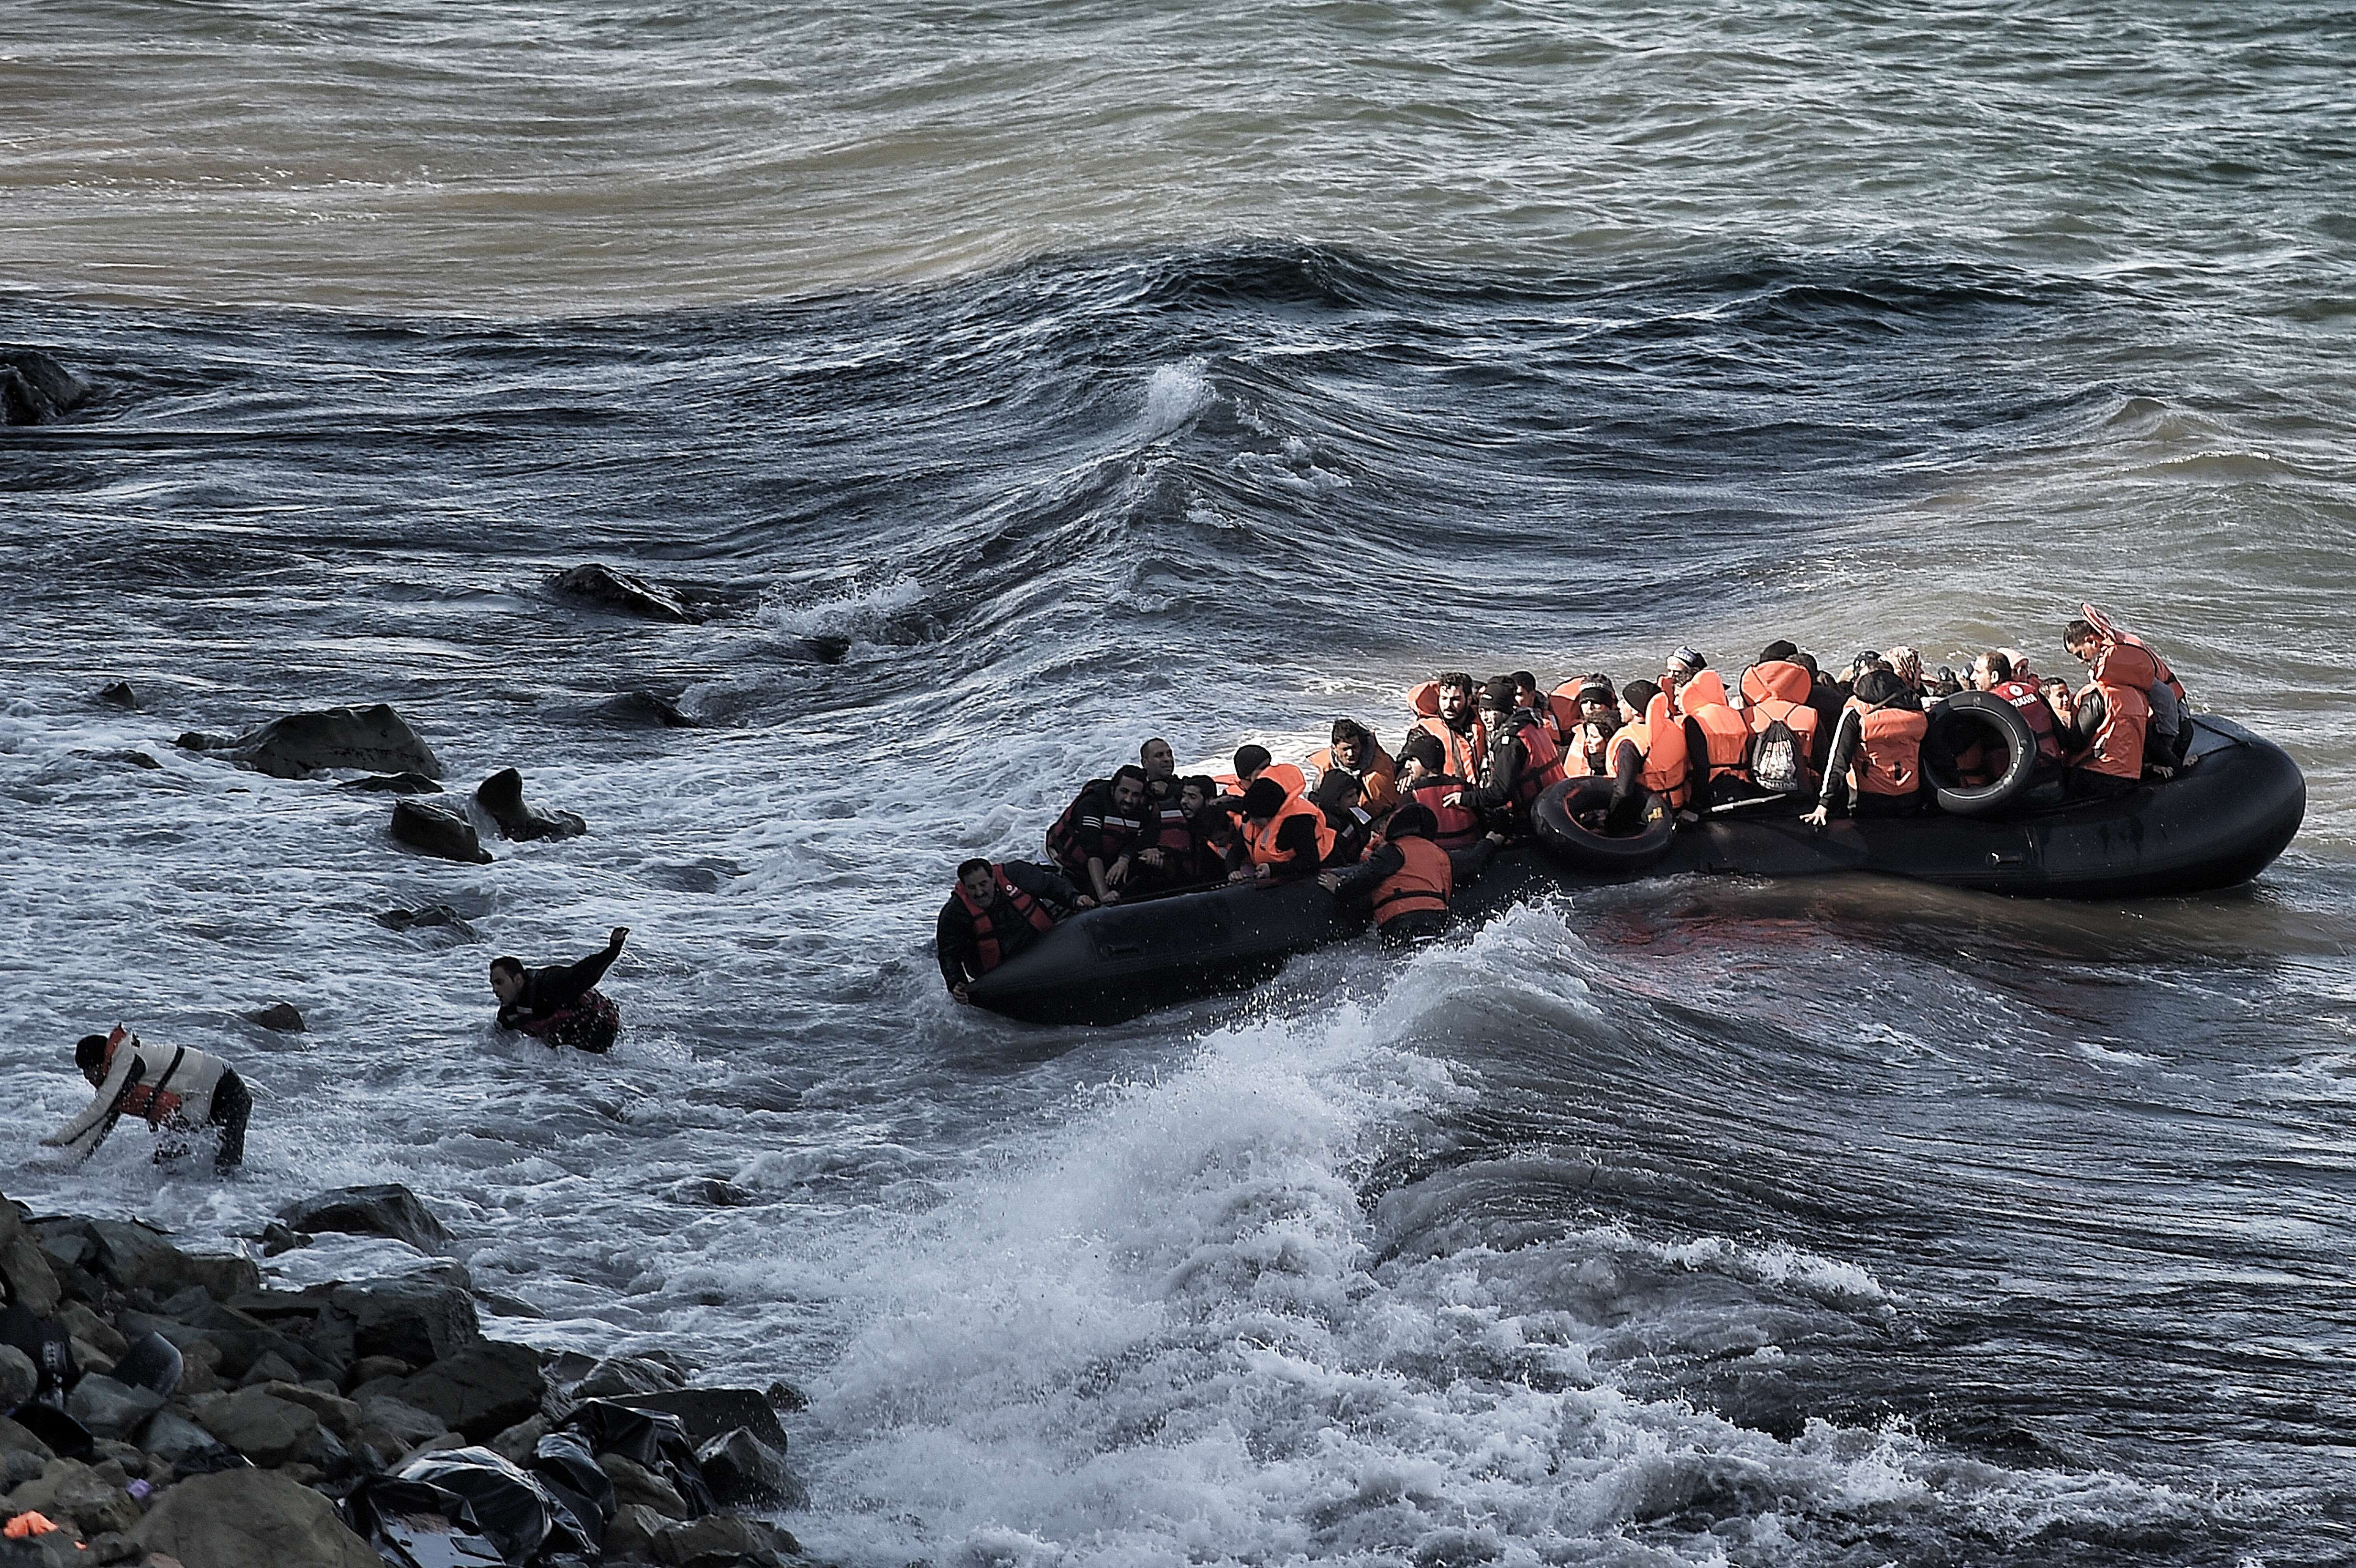 Refugees and migrants try to reach the shore on the Greek island of Lesvos, despite a rough sea, on October 30, 2015, after crossing the Aegean sea from Turkey. Photo credit: ARIS MESSINIS/AFP/Getty Images